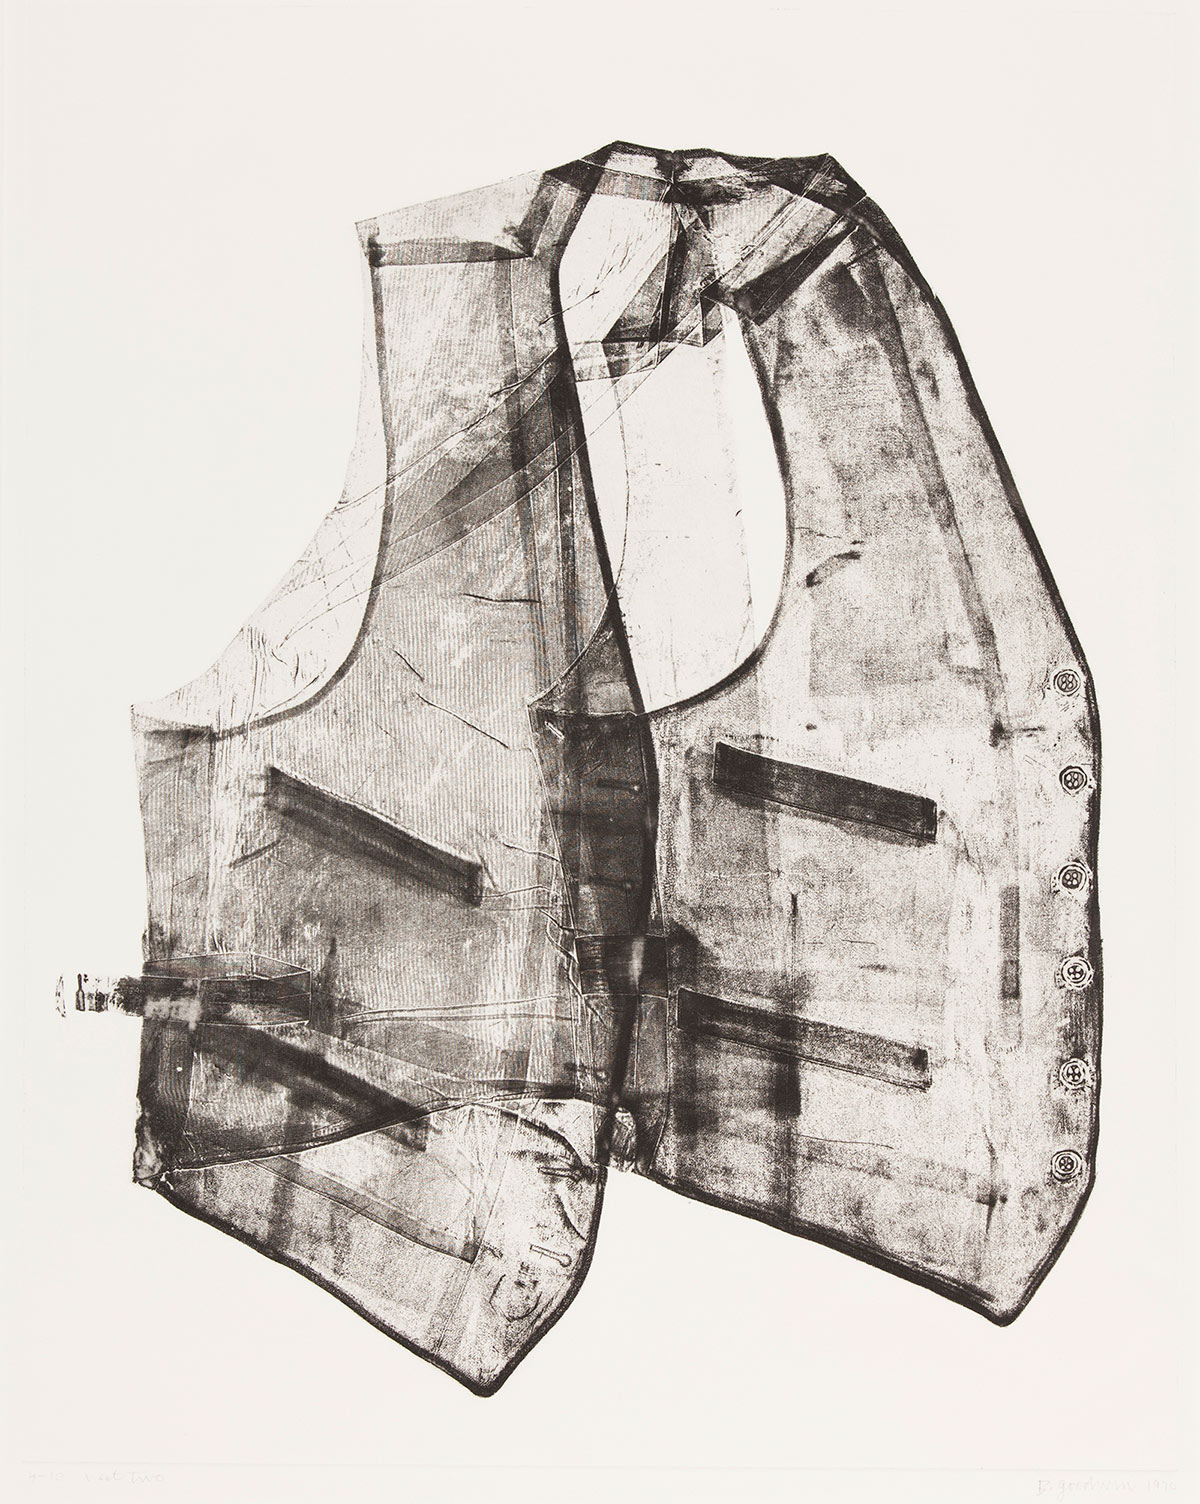 A black and white print depicts a vest. With an x-ray-like quality we can see all the details of the garment including its pockets, buttons and lined texture of the fabric.